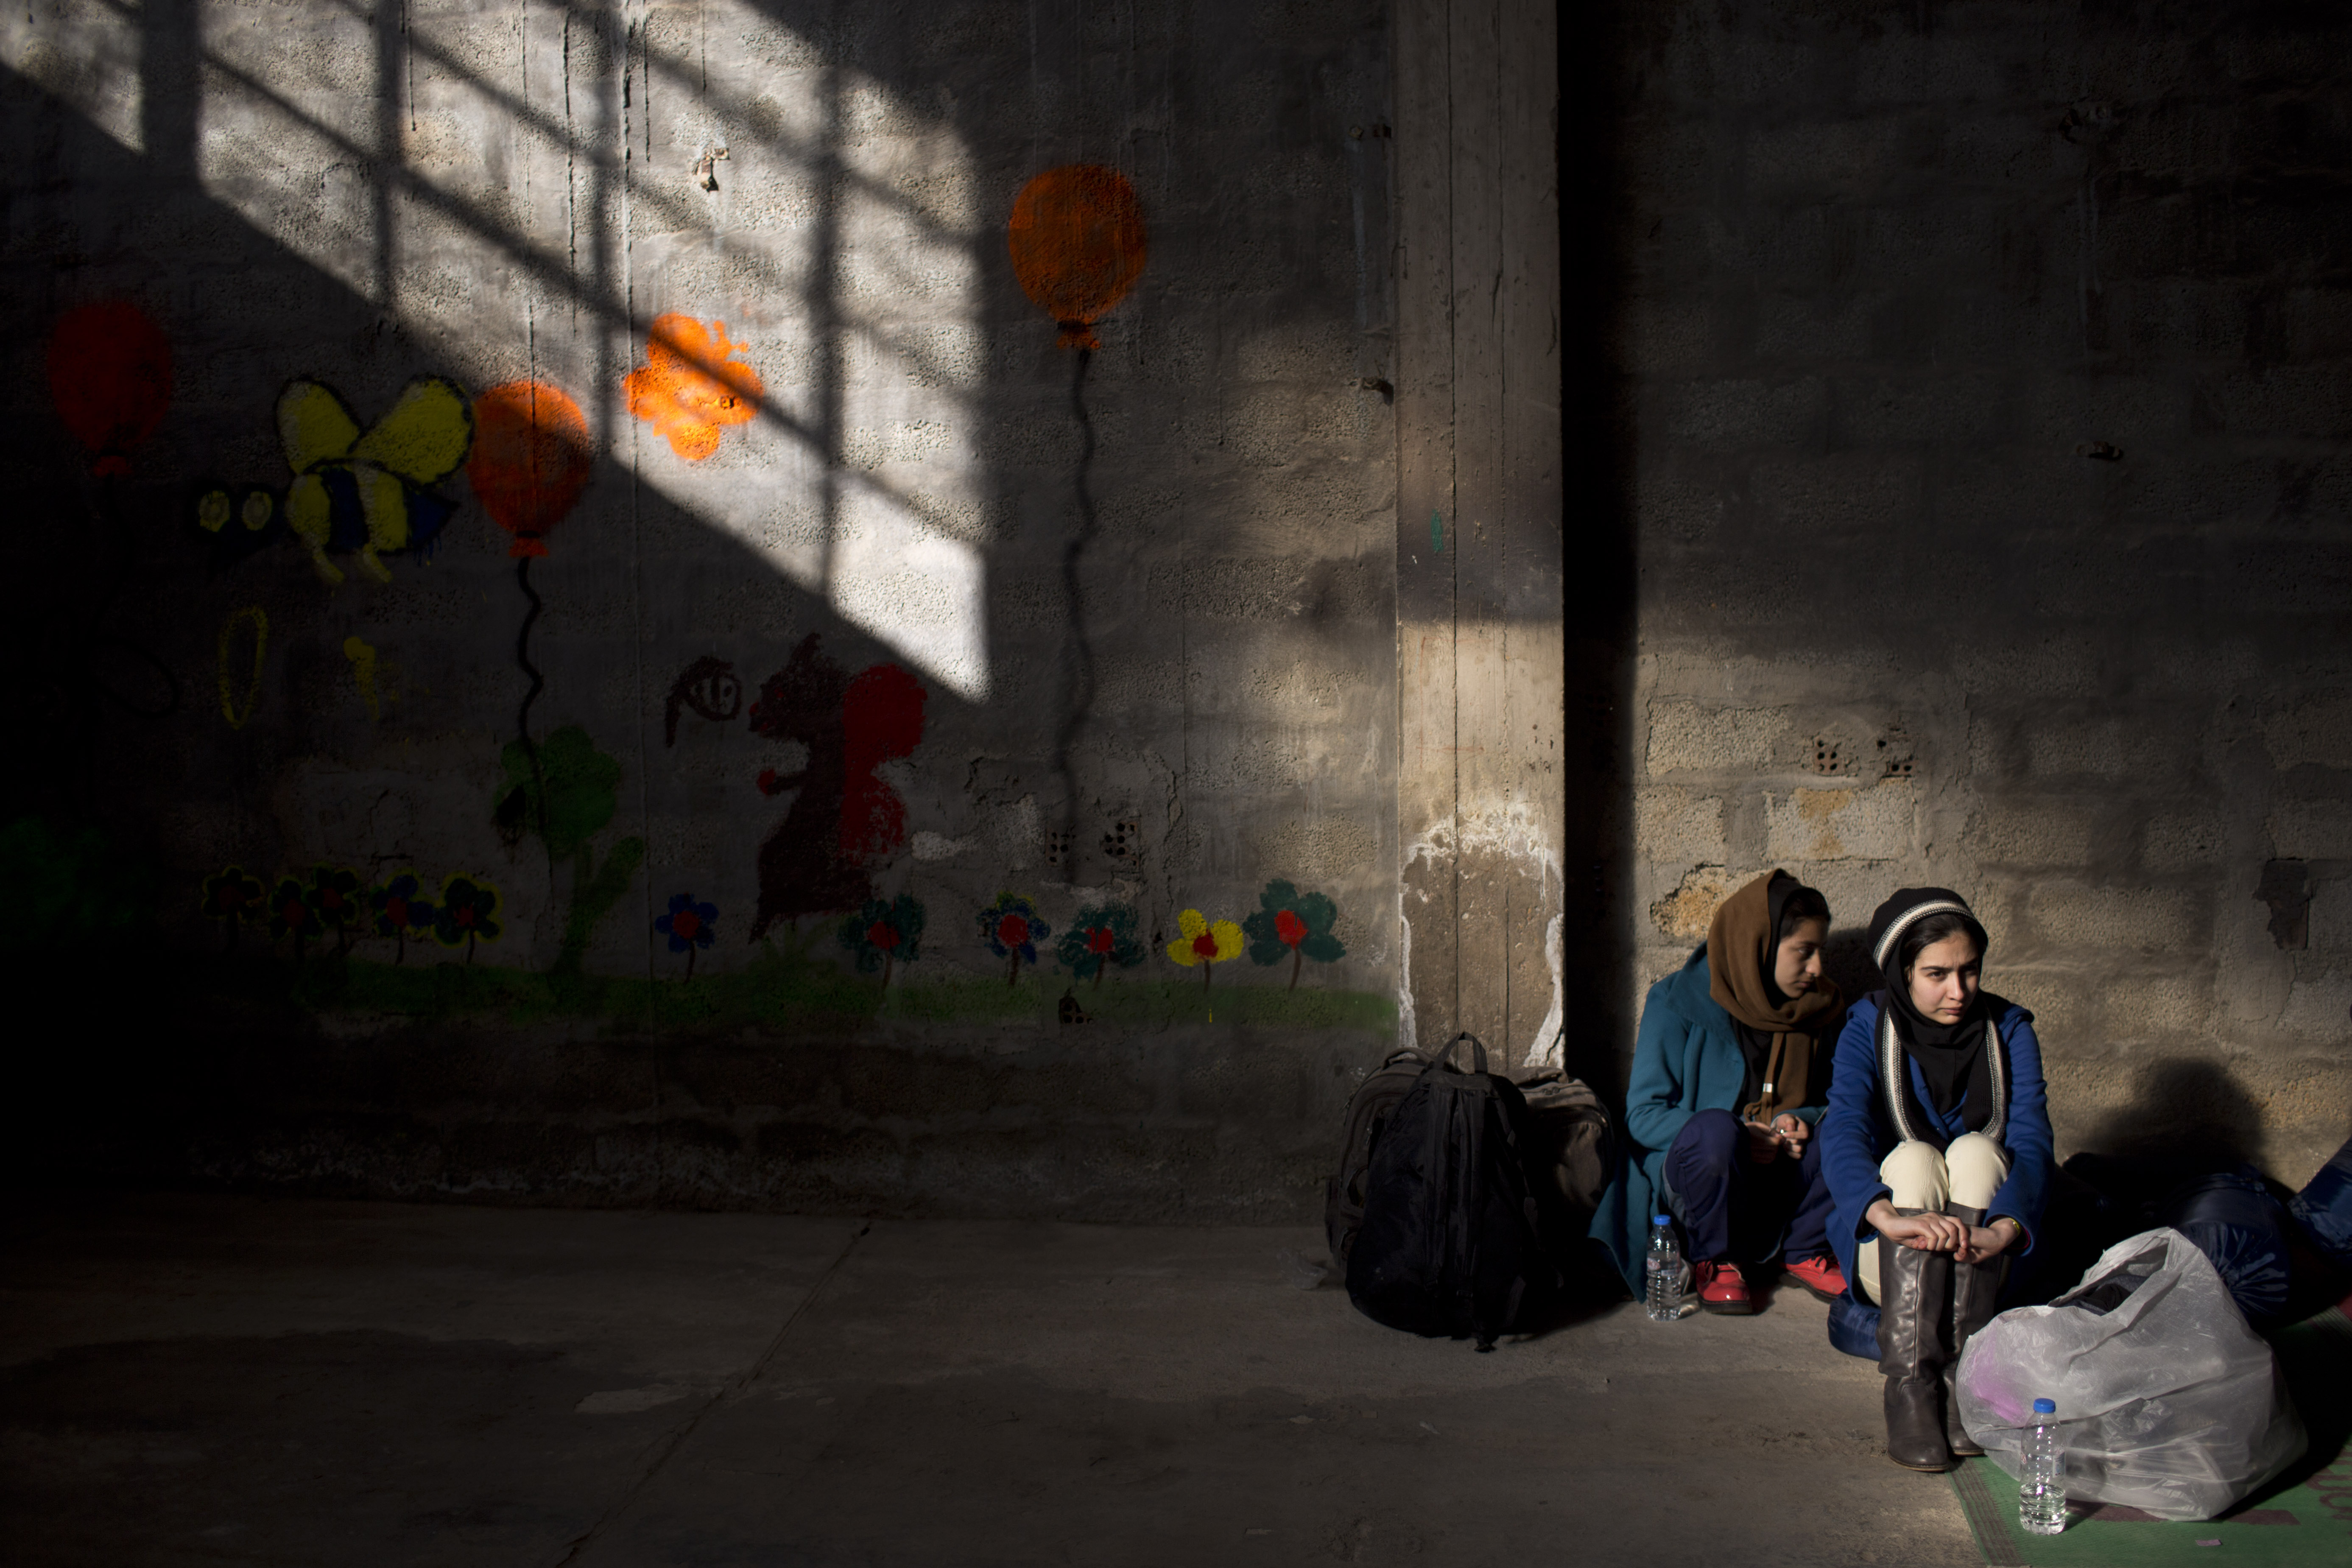 Two Afghan young women wait to be registered in the Tabakika registration center, Greece, Jan. 15, 2016.